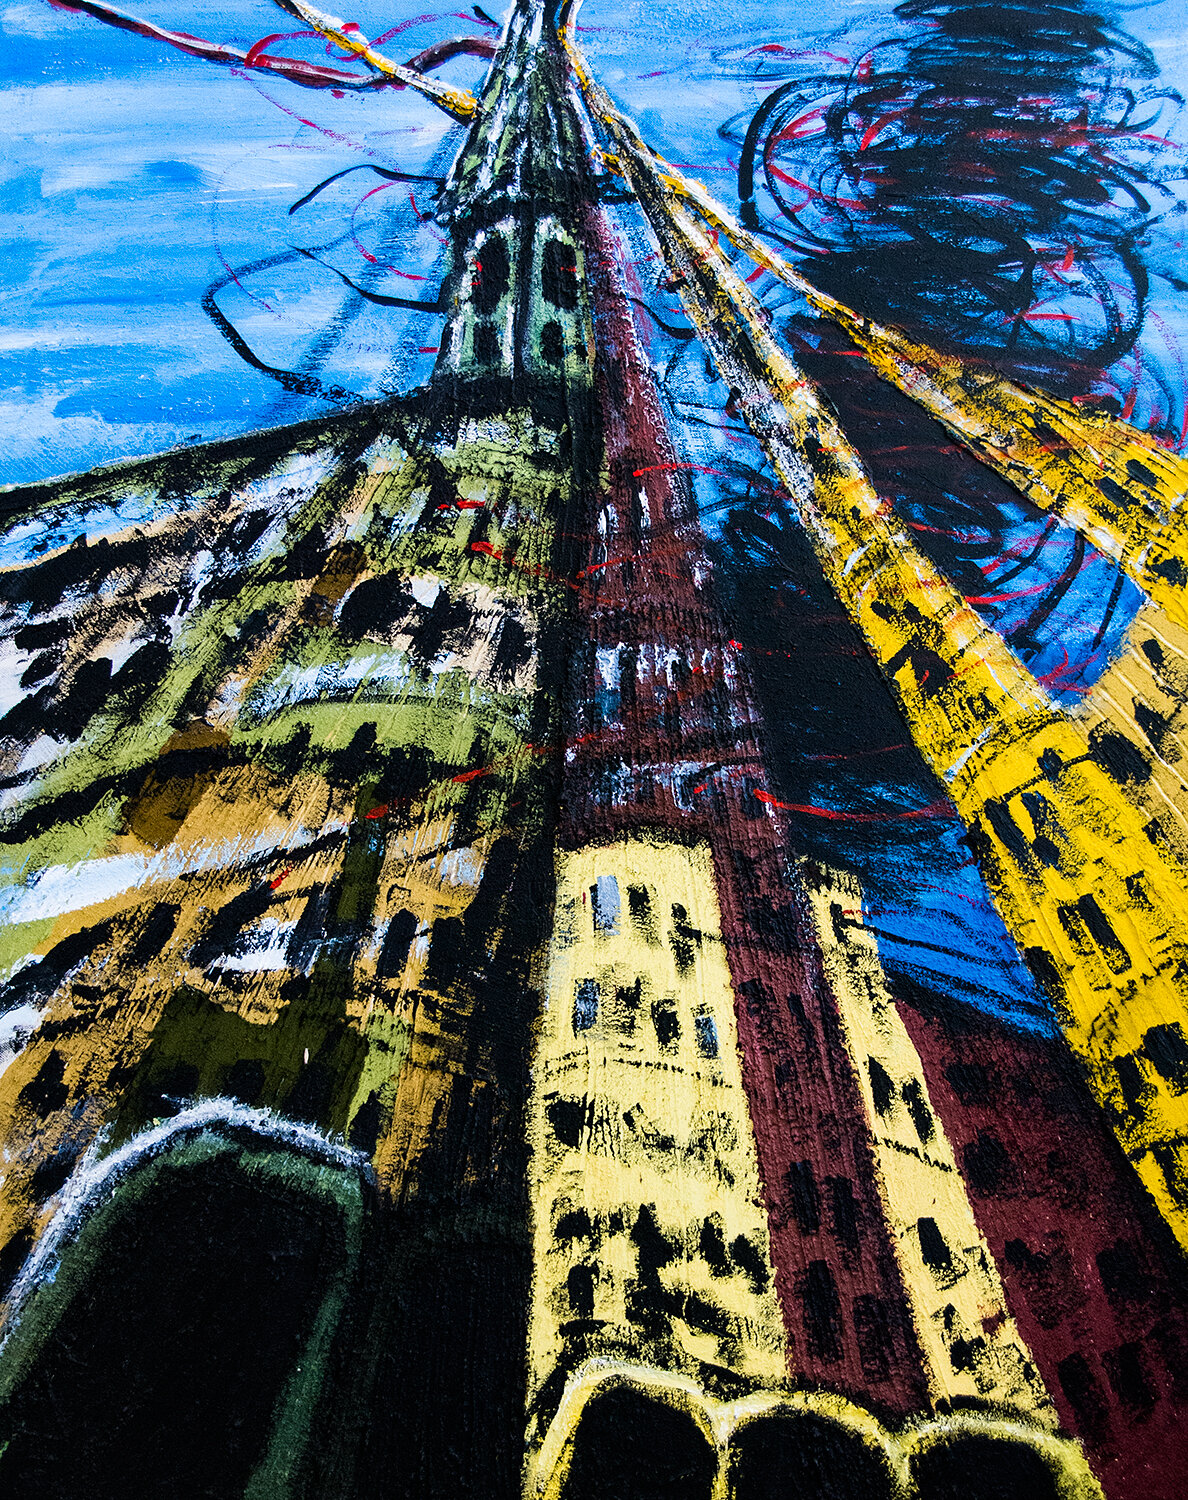 The Valencia series: Towers that Reach up to the Sky, acrylic on canvas, 92x73 cm